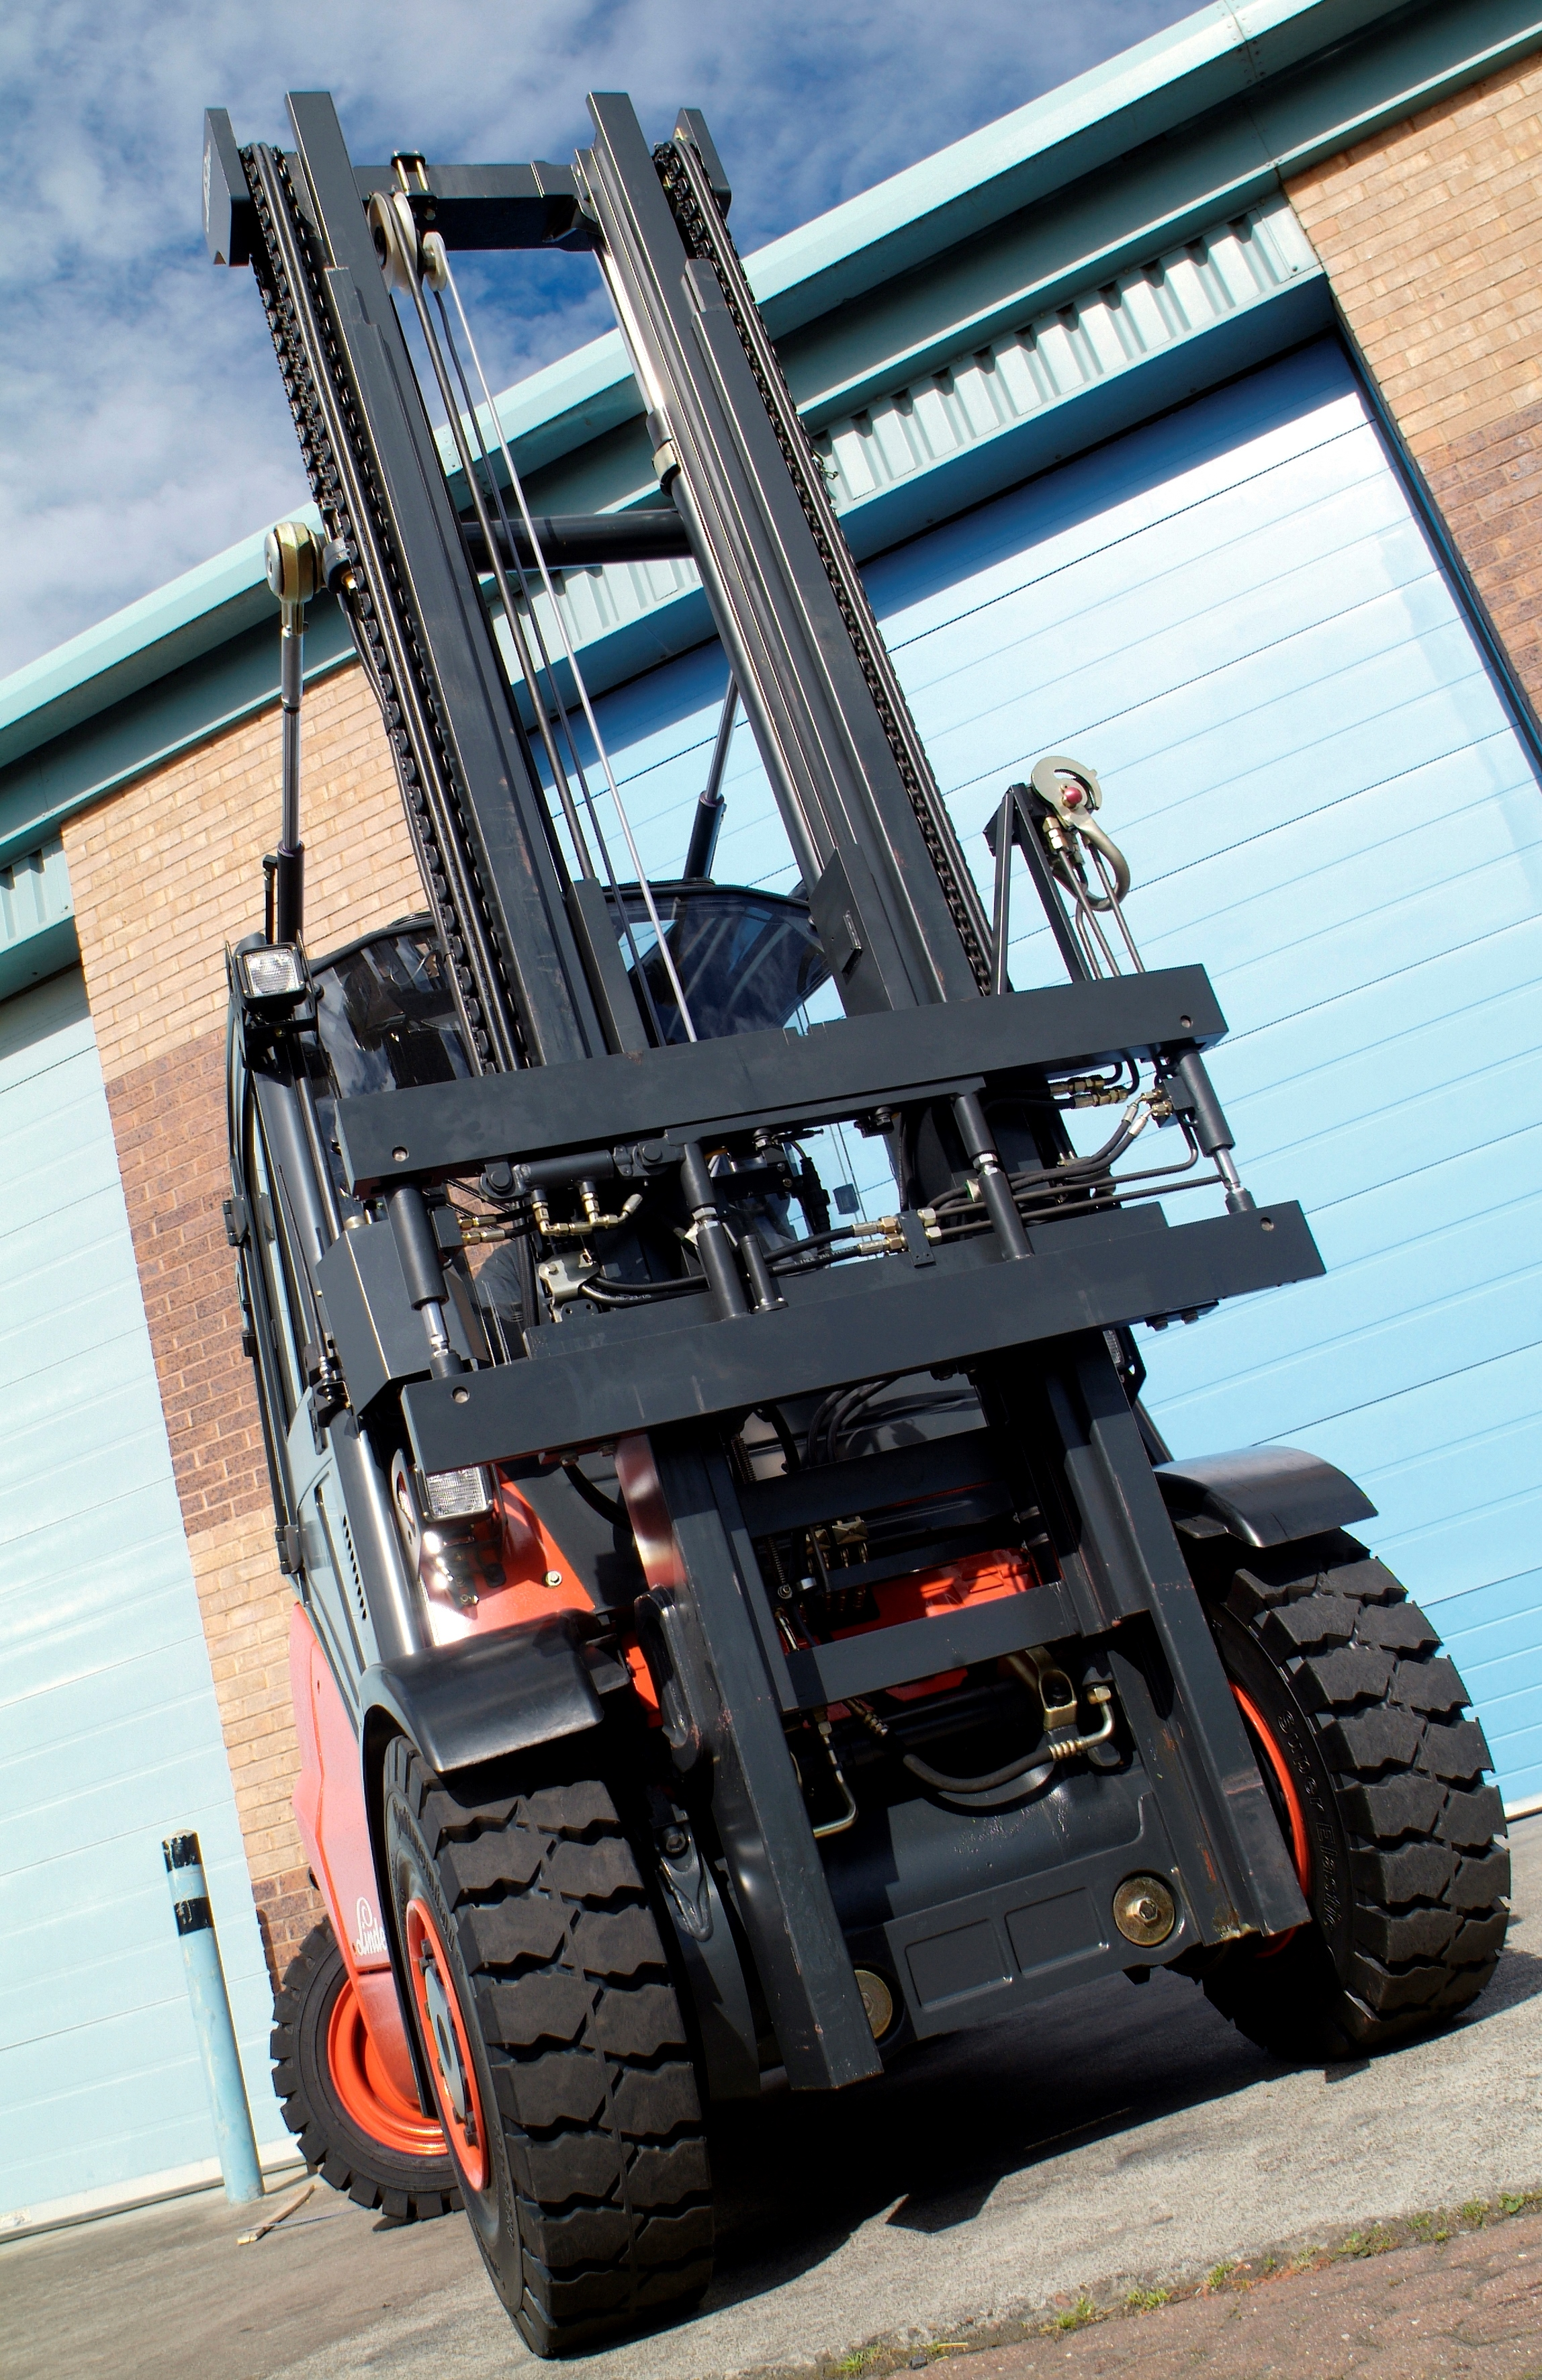 PowerMount the Quick Release System to Interchange Forklift Attachments